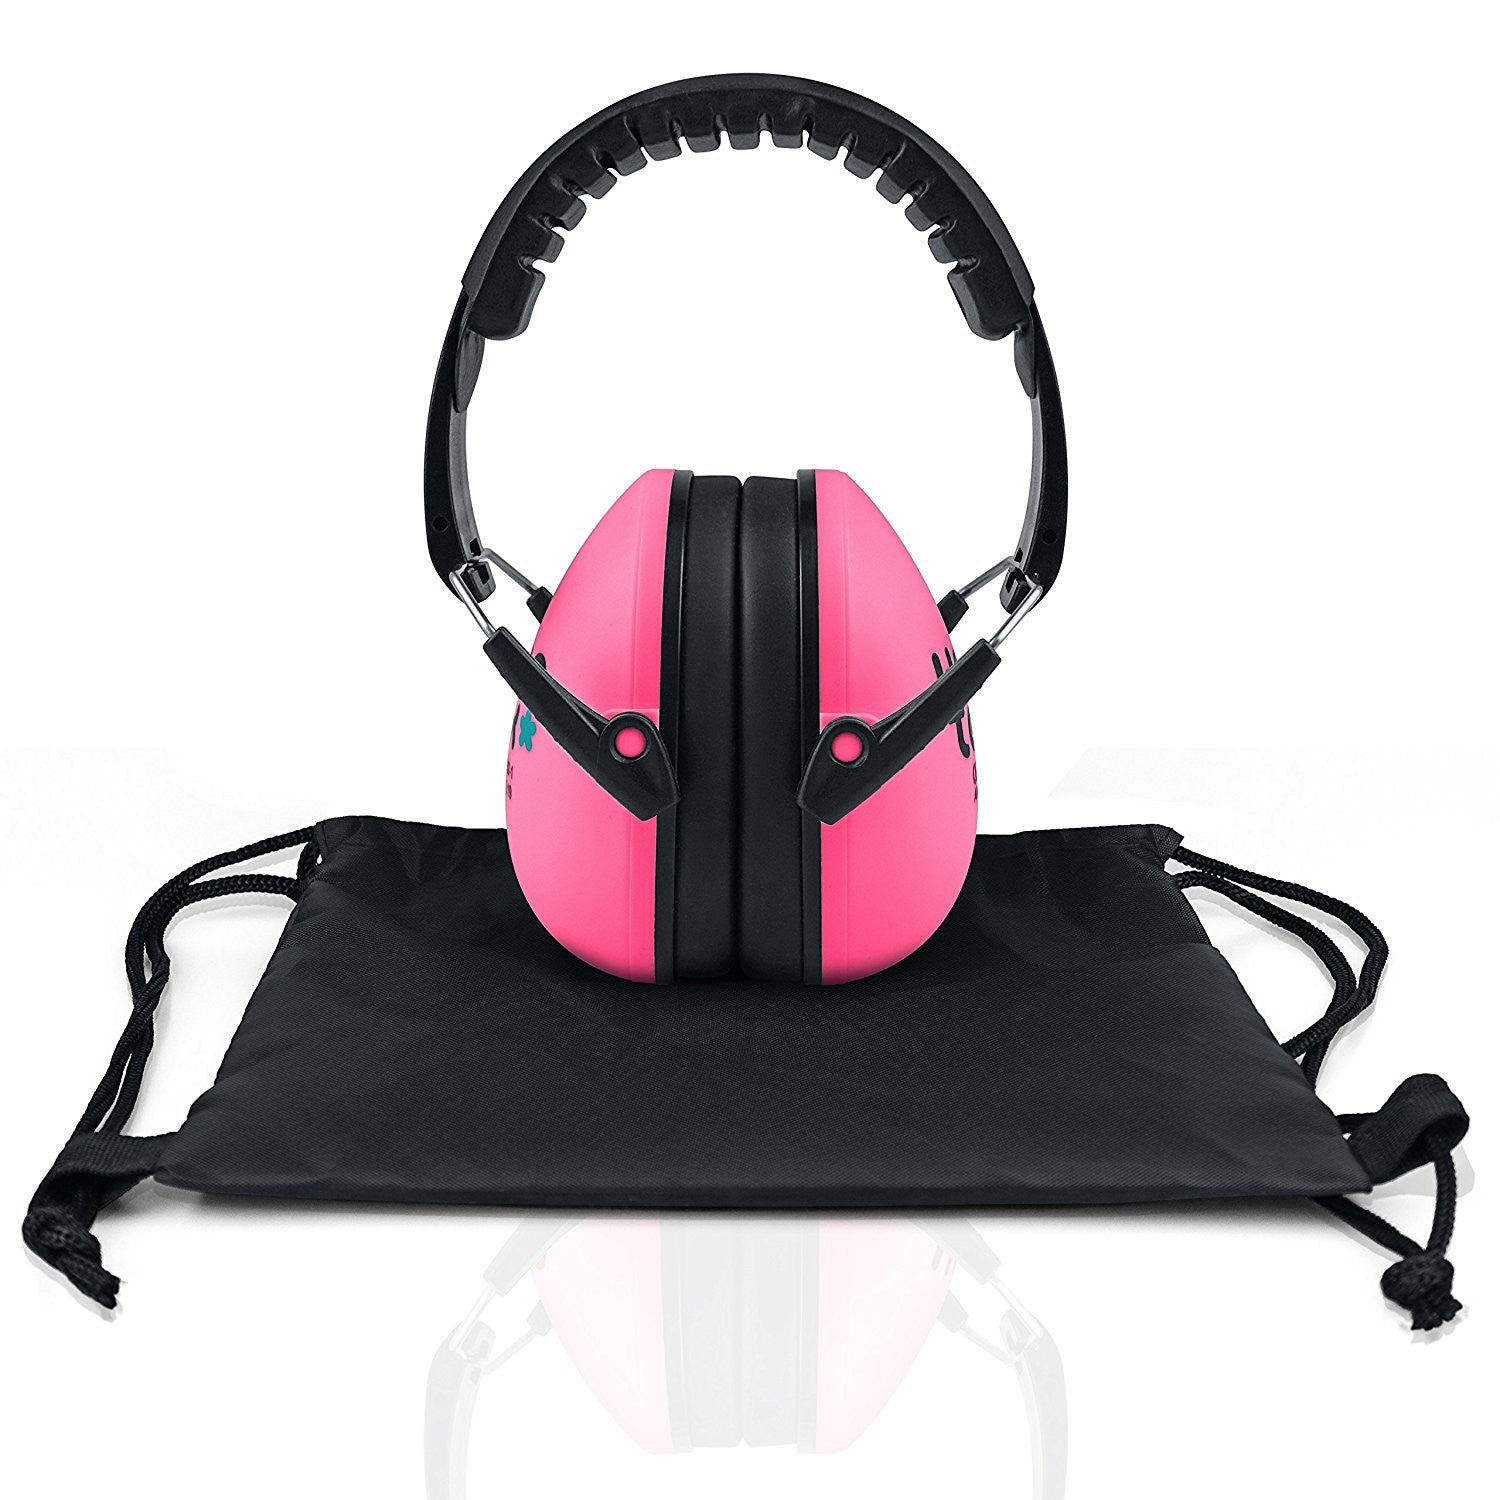 Bubble Pink Senna Earmuffs Hearing Protection with Travel Bag